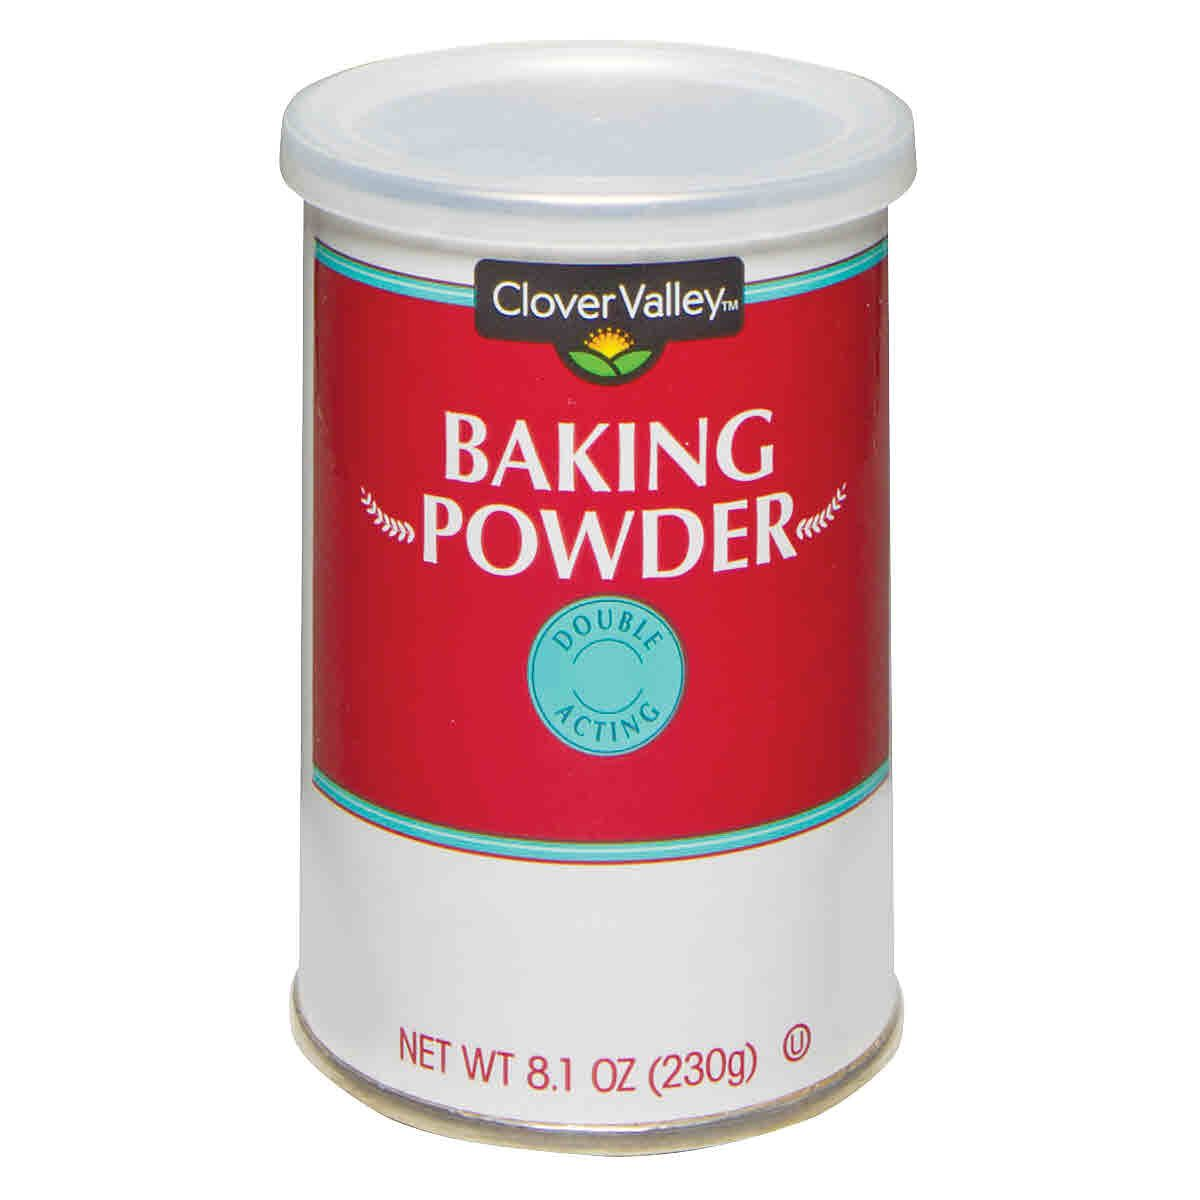 Clover Valley Baking Powder 8.1 oz